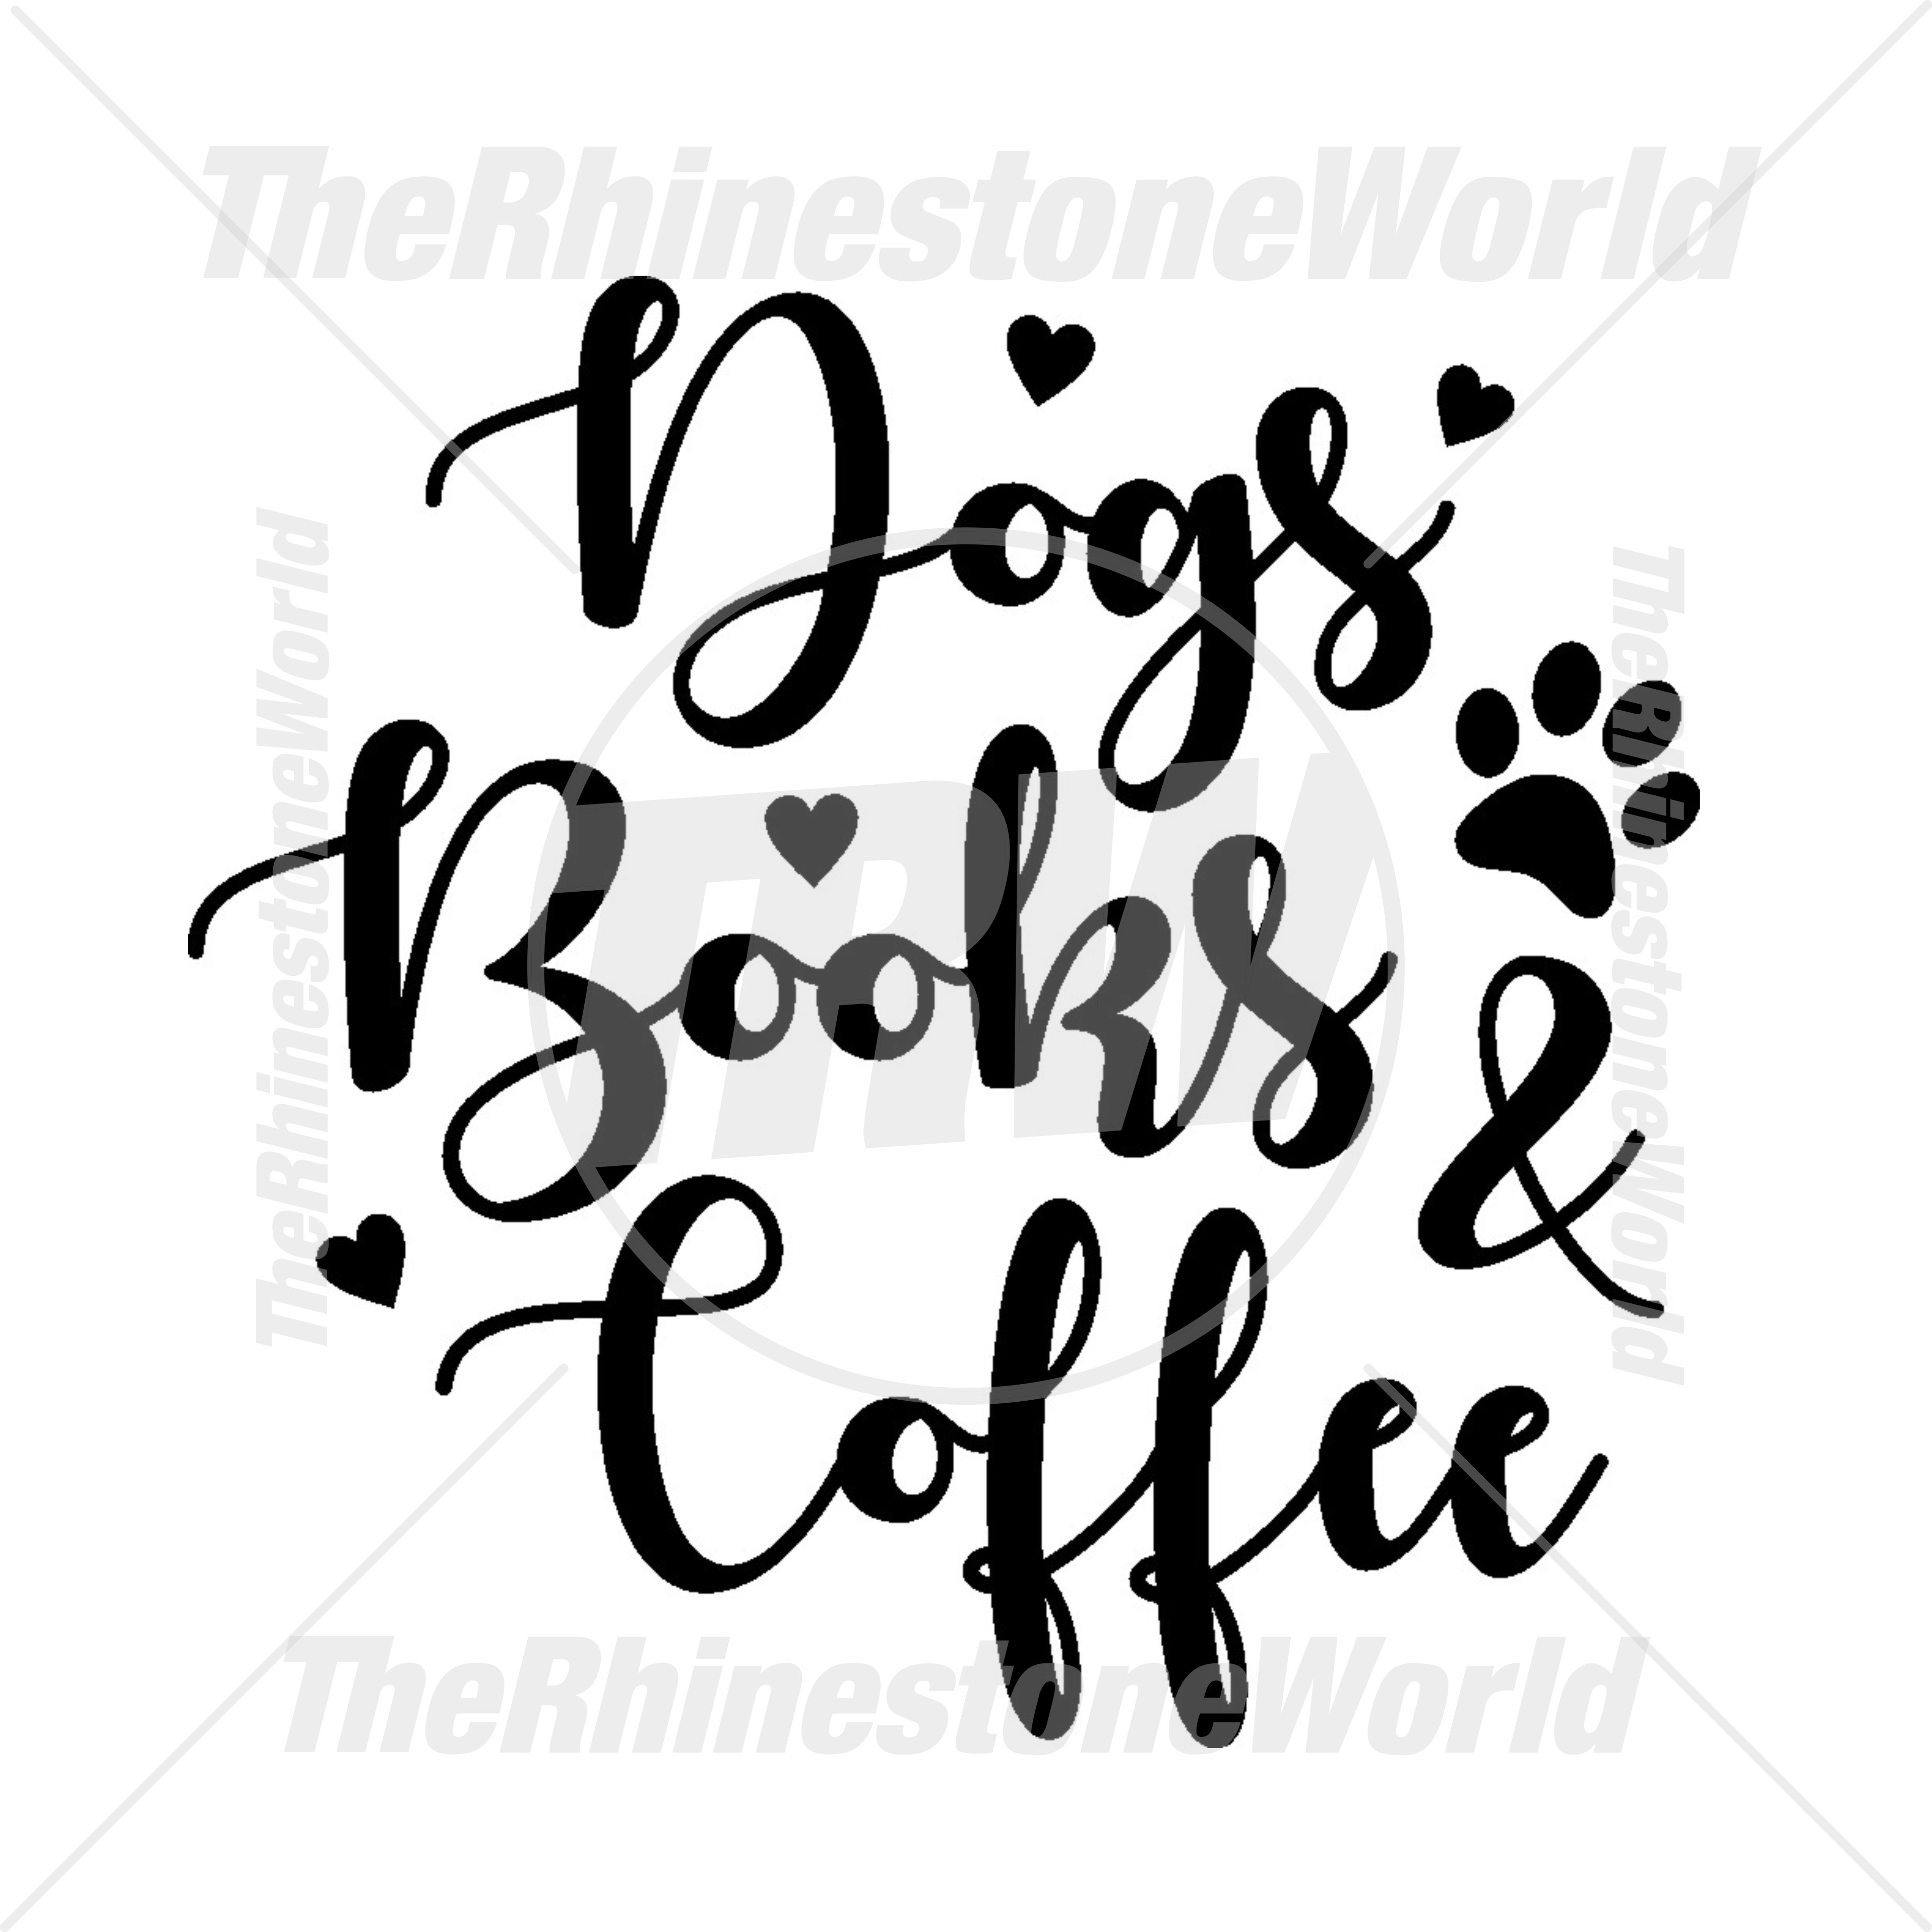 TRW Dog Books and Coffee Vector Design